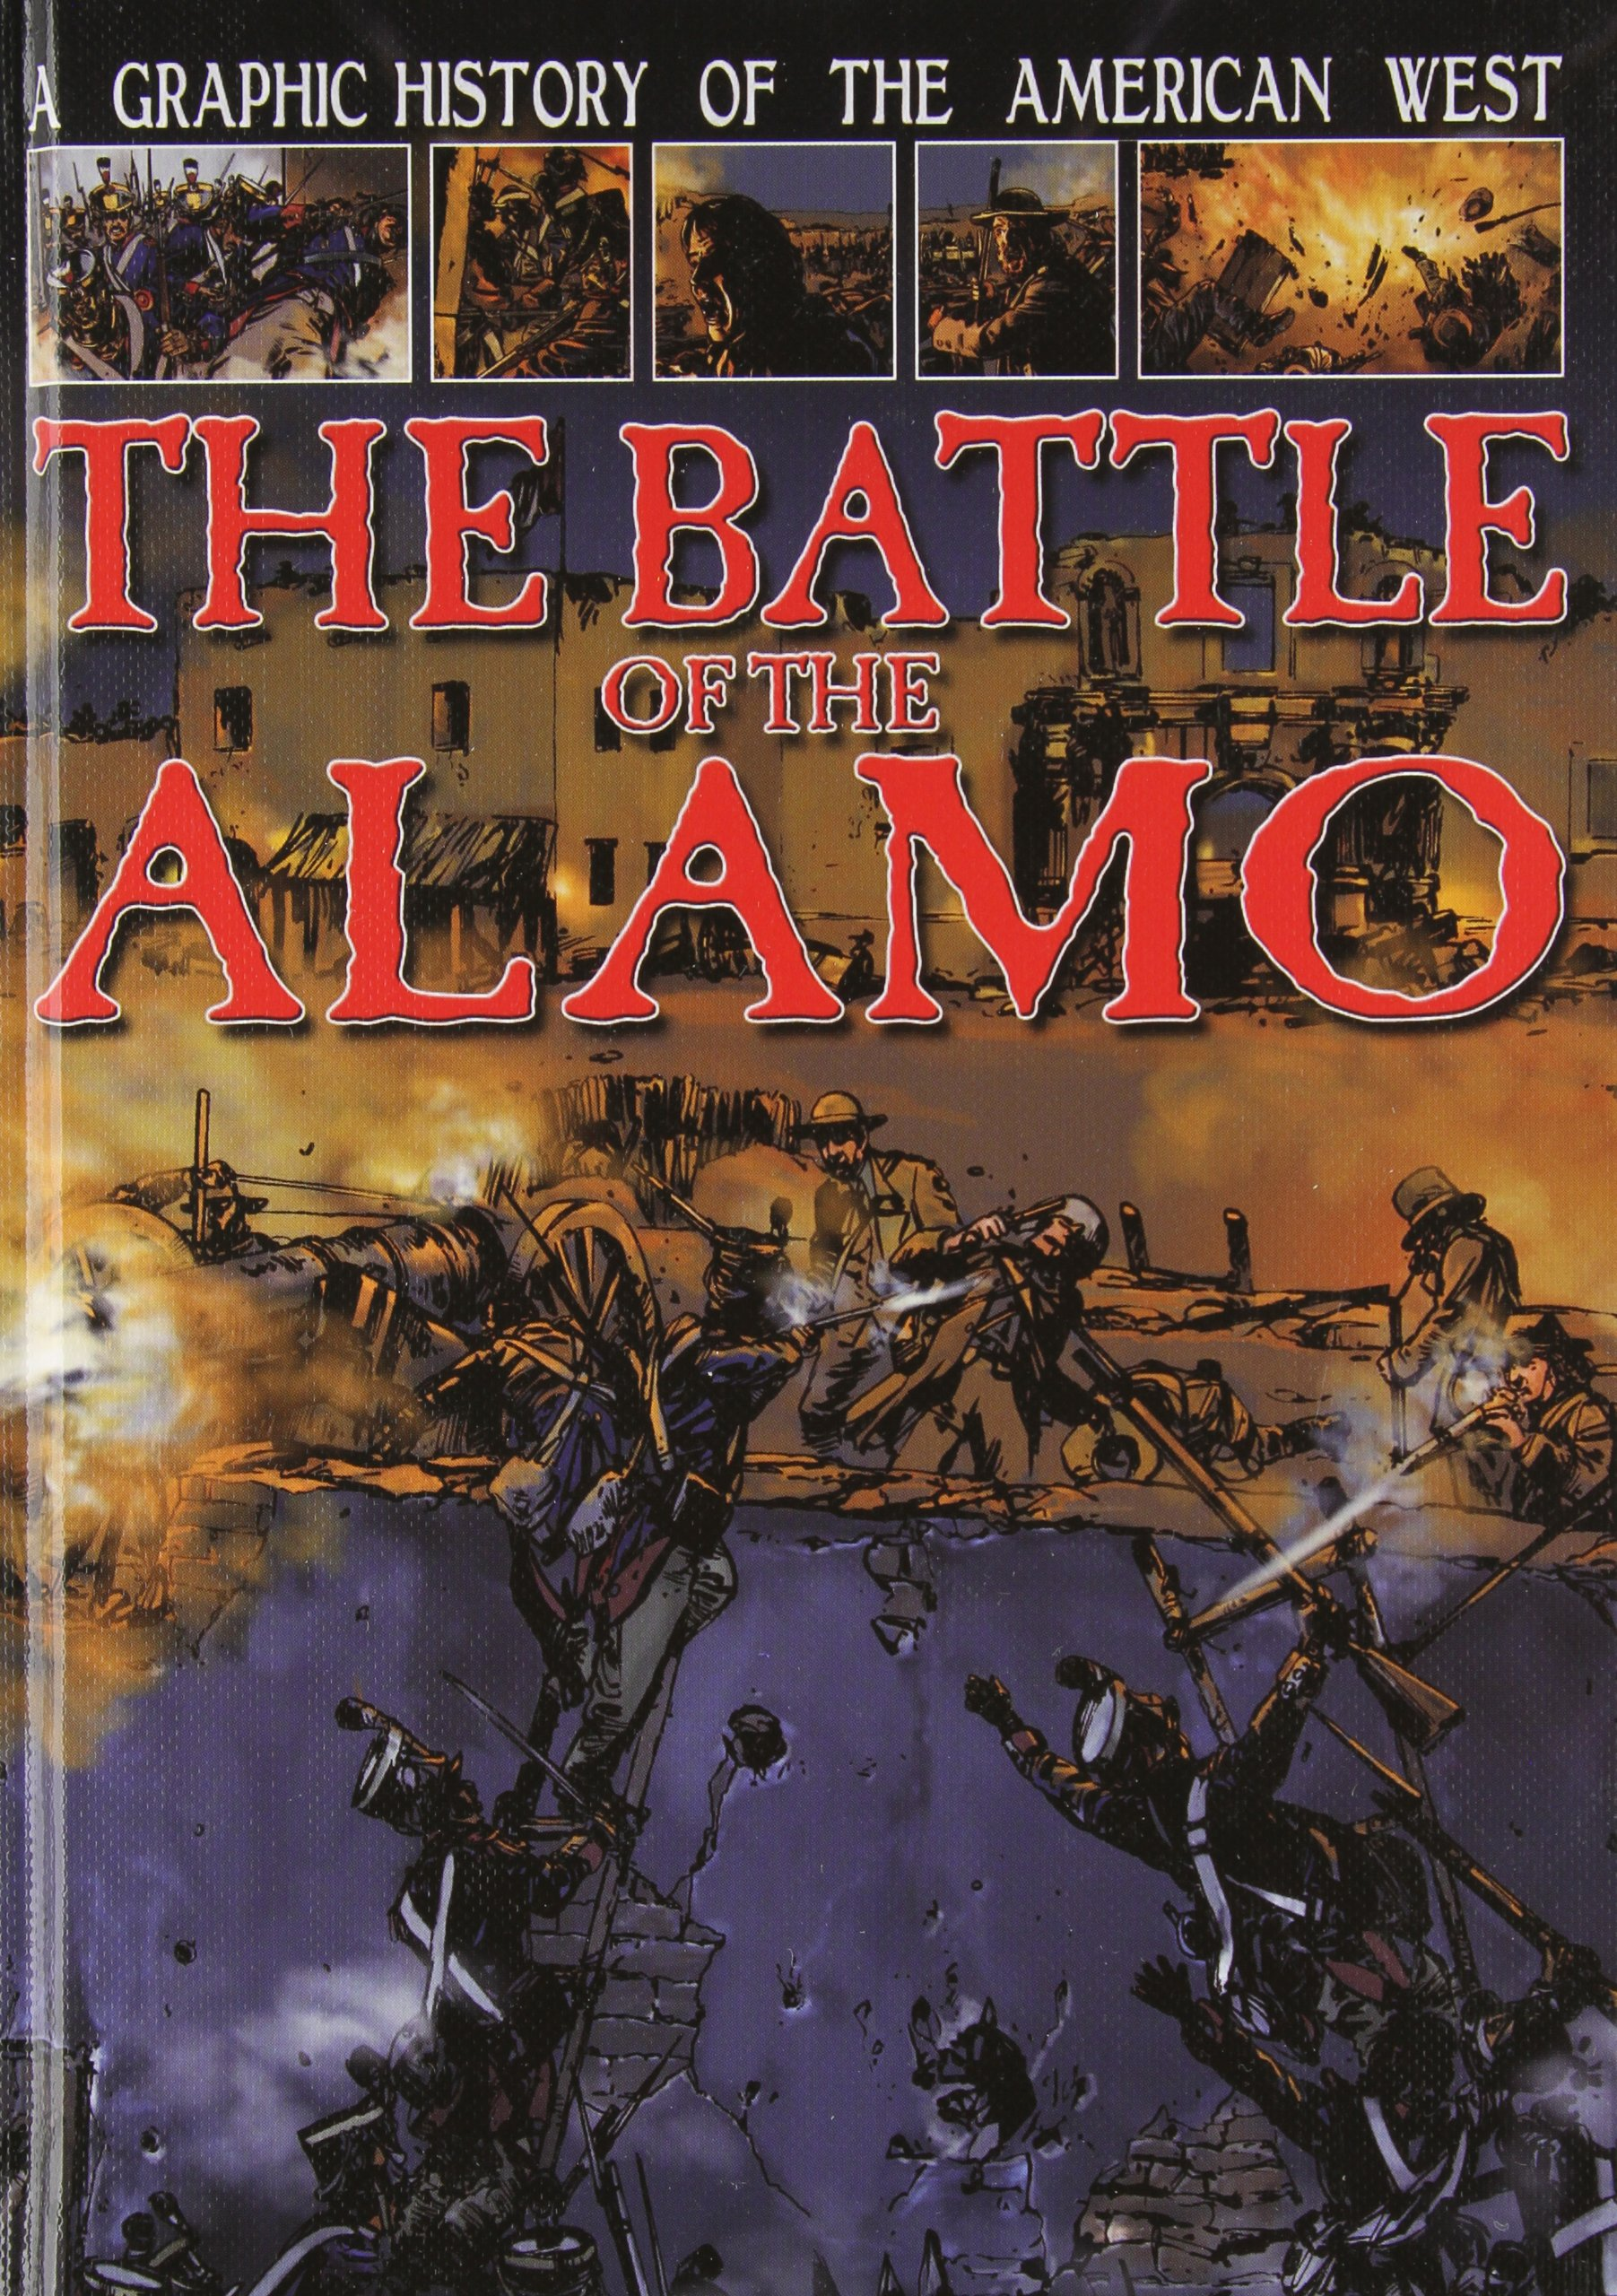 A Graphic History of the American West: The Battle of the Alamo